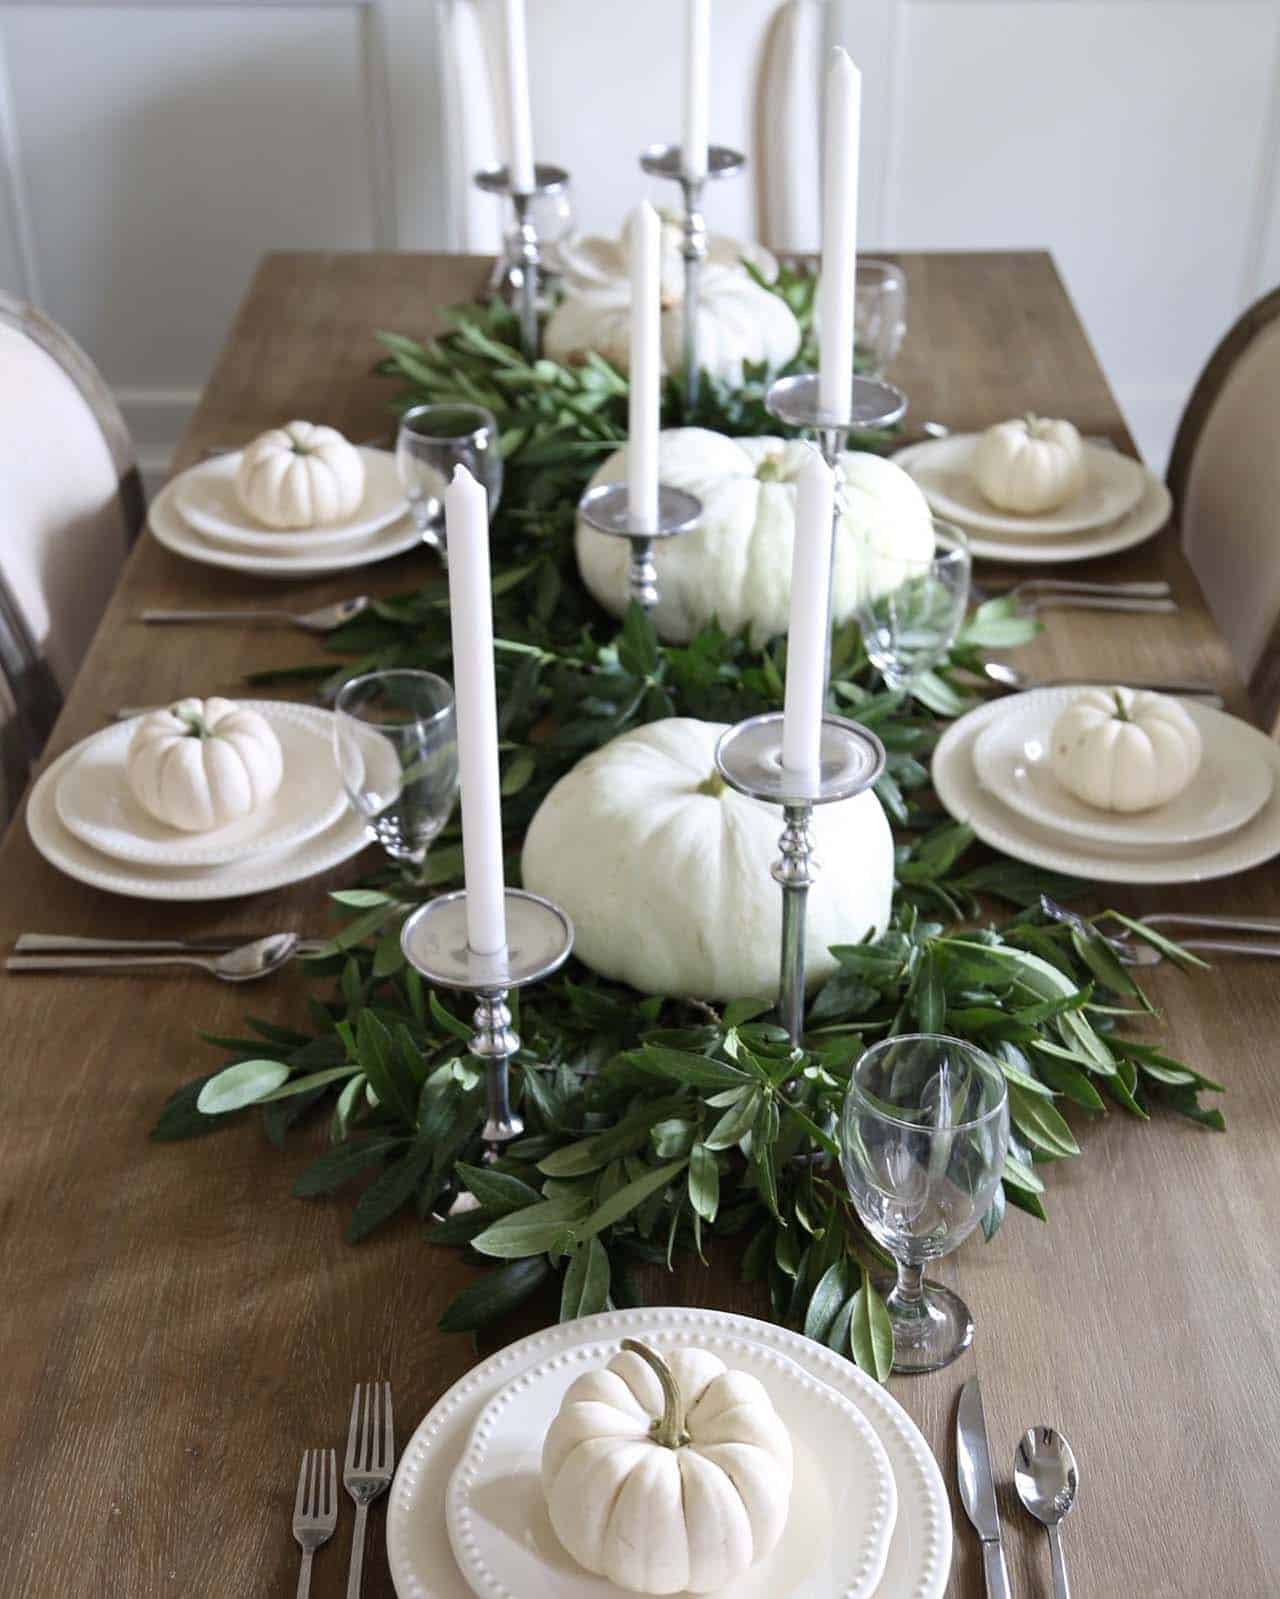 Table Decorations Ideas: 25+ Warm And Welcoming Fall Table Decorating Ideas